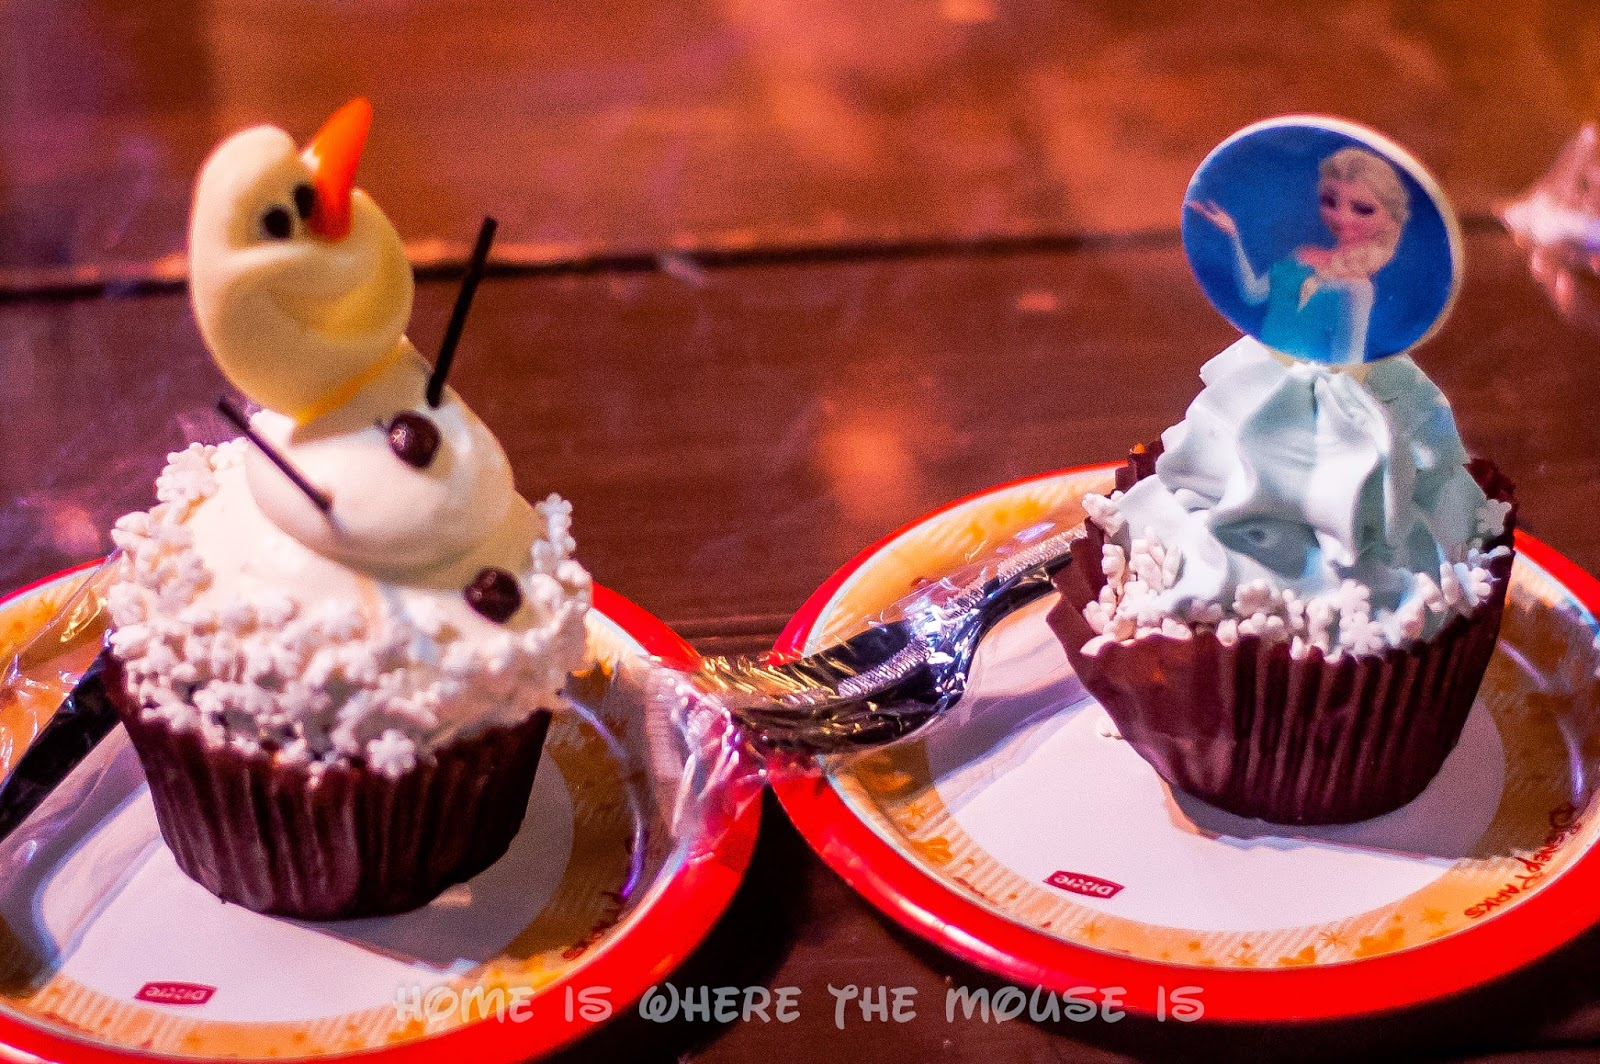 Olaf and Elsa cupcakes.  Wandering Oaken's Frozen Funland